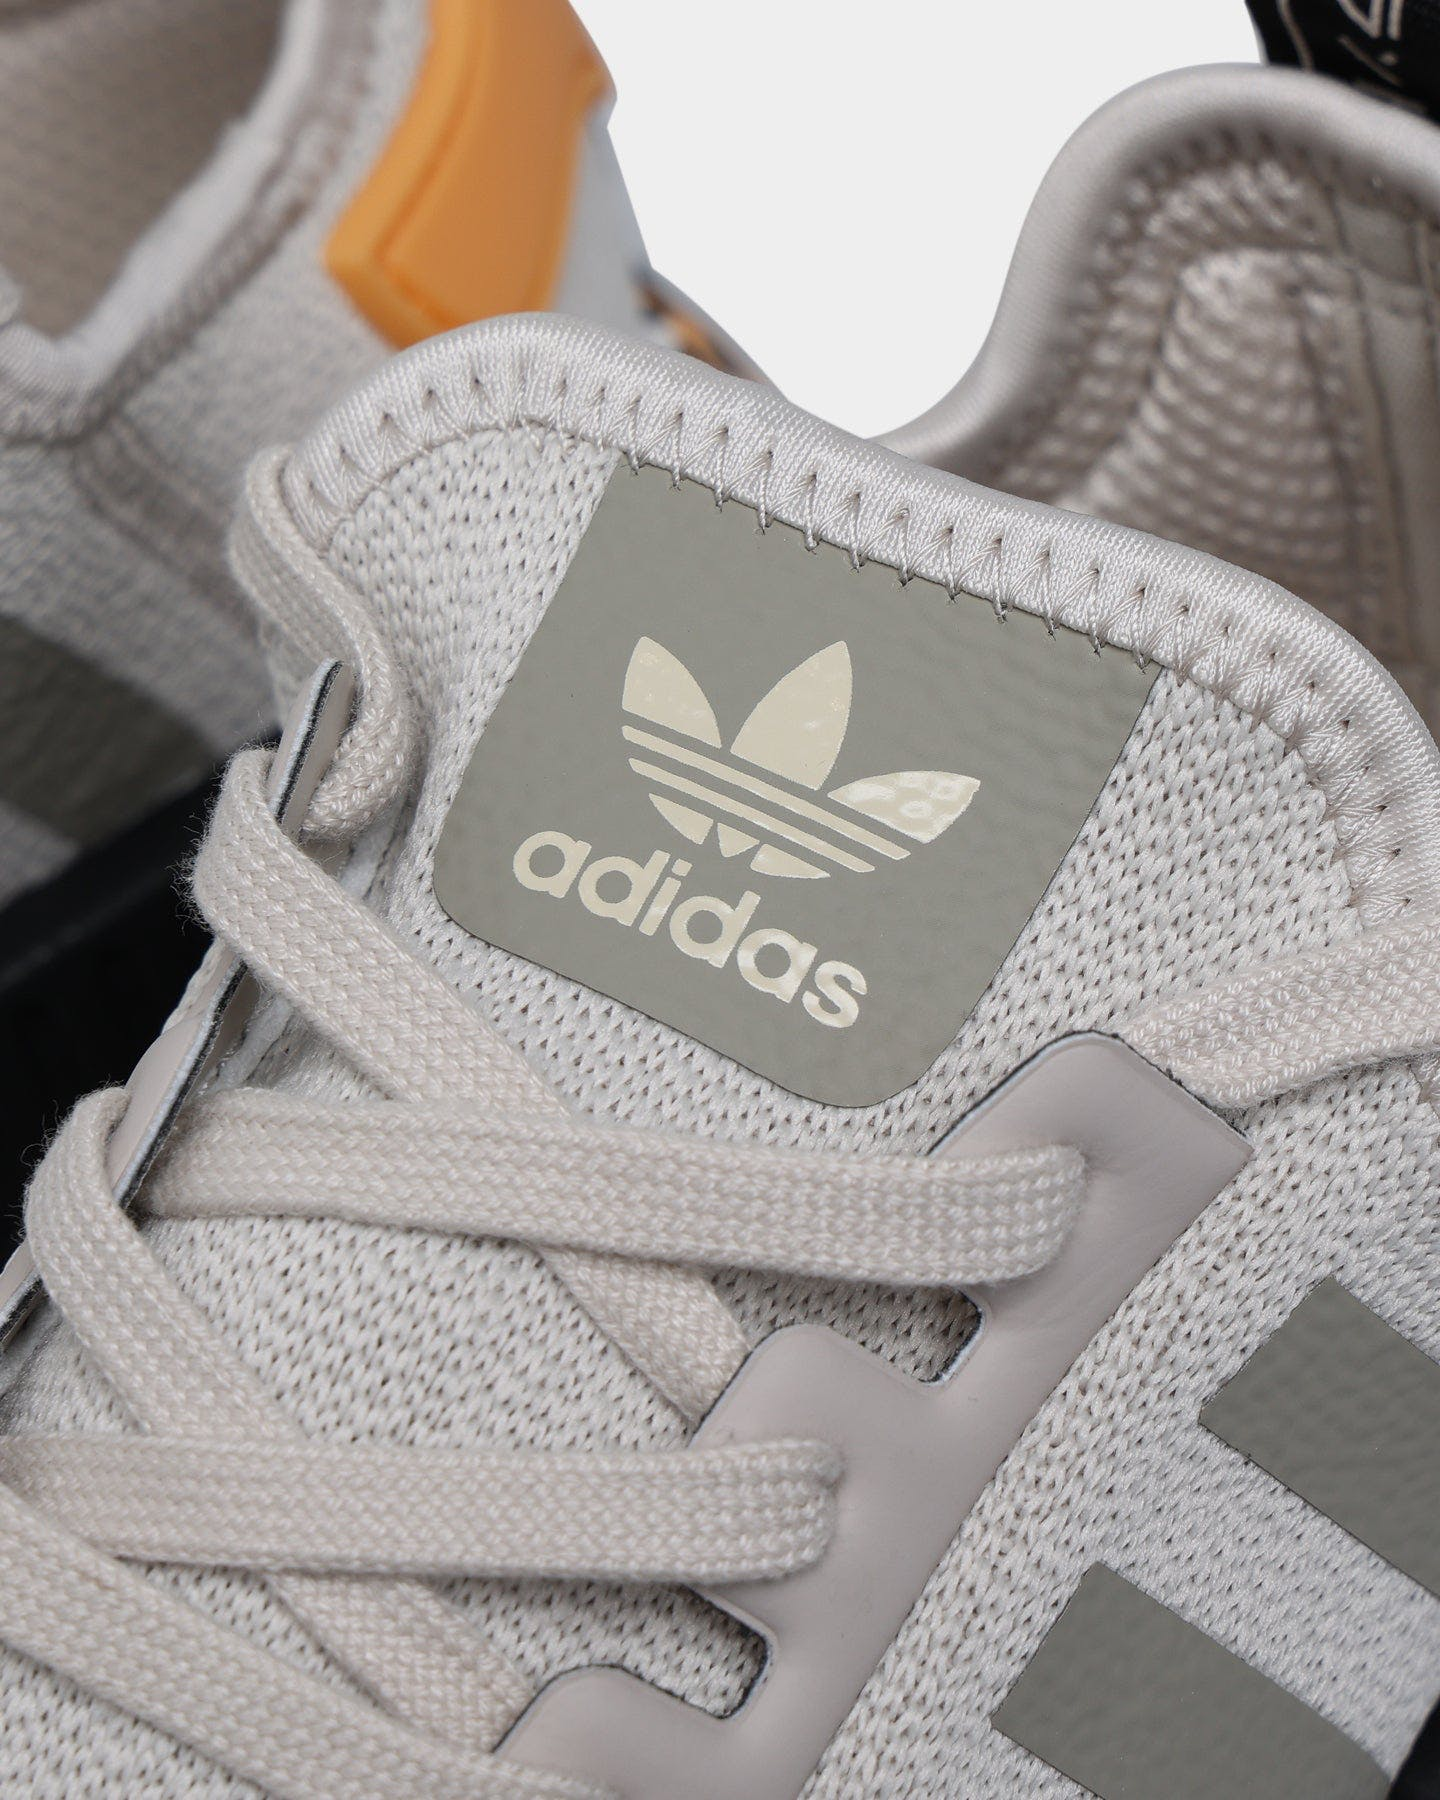 Adidas Womens NMD_R1 Bliss / Pale Nude / Core Black